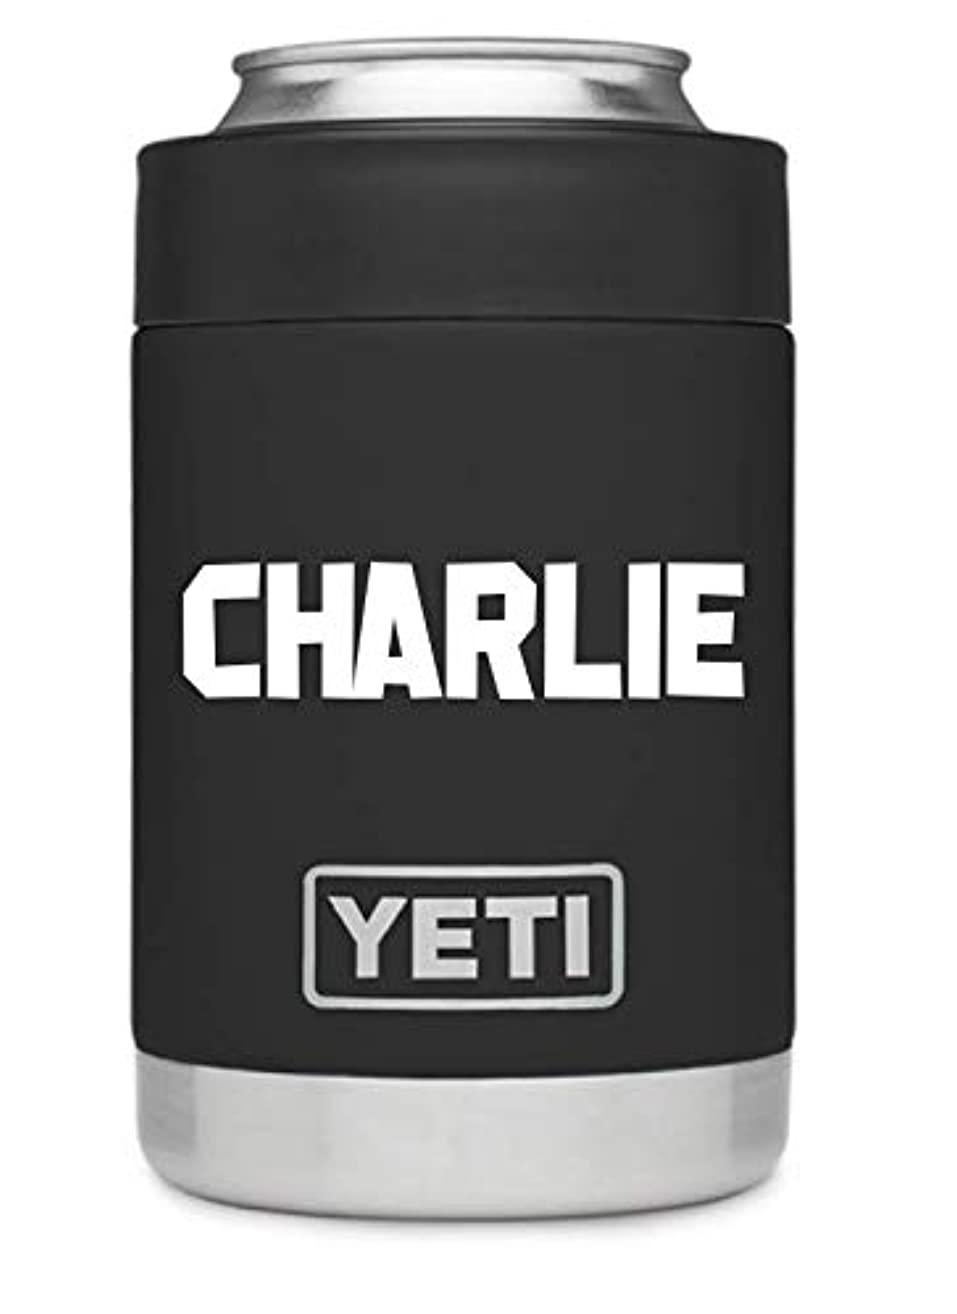 Custom YETI Colster, (ALL COLORS AVAILABLE) Personalized YETI Rambler Colster, Custom YETI Groomsmen Gift, Father's Day Gift